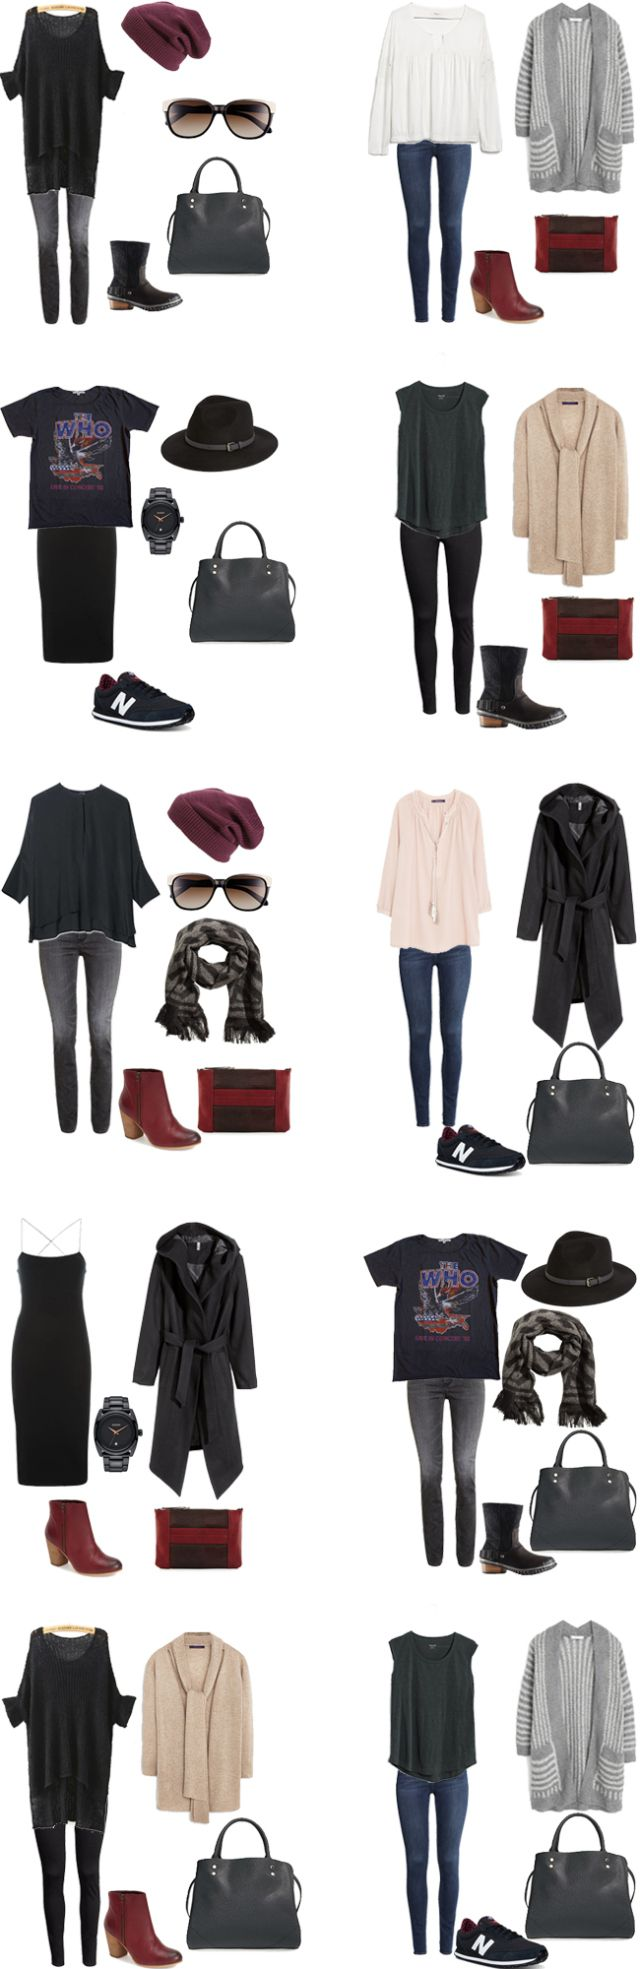 What To Wear In New York City Winter Edition Outfits 1 10 Nglight Travellight Traveltips